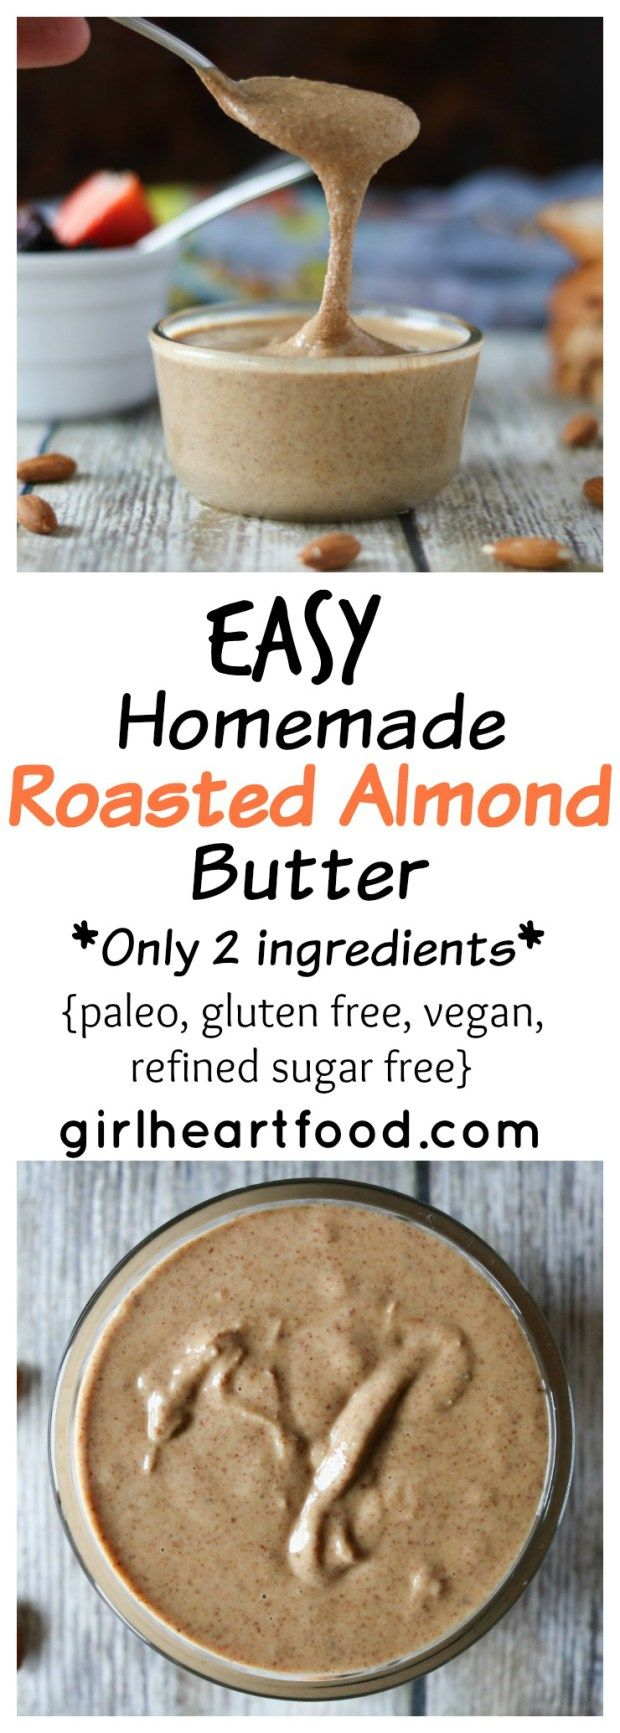 Easy Homemade Roasted Almond Butter {paleo, gluten free, vegan, refined sugar free & only 2 ingredients}